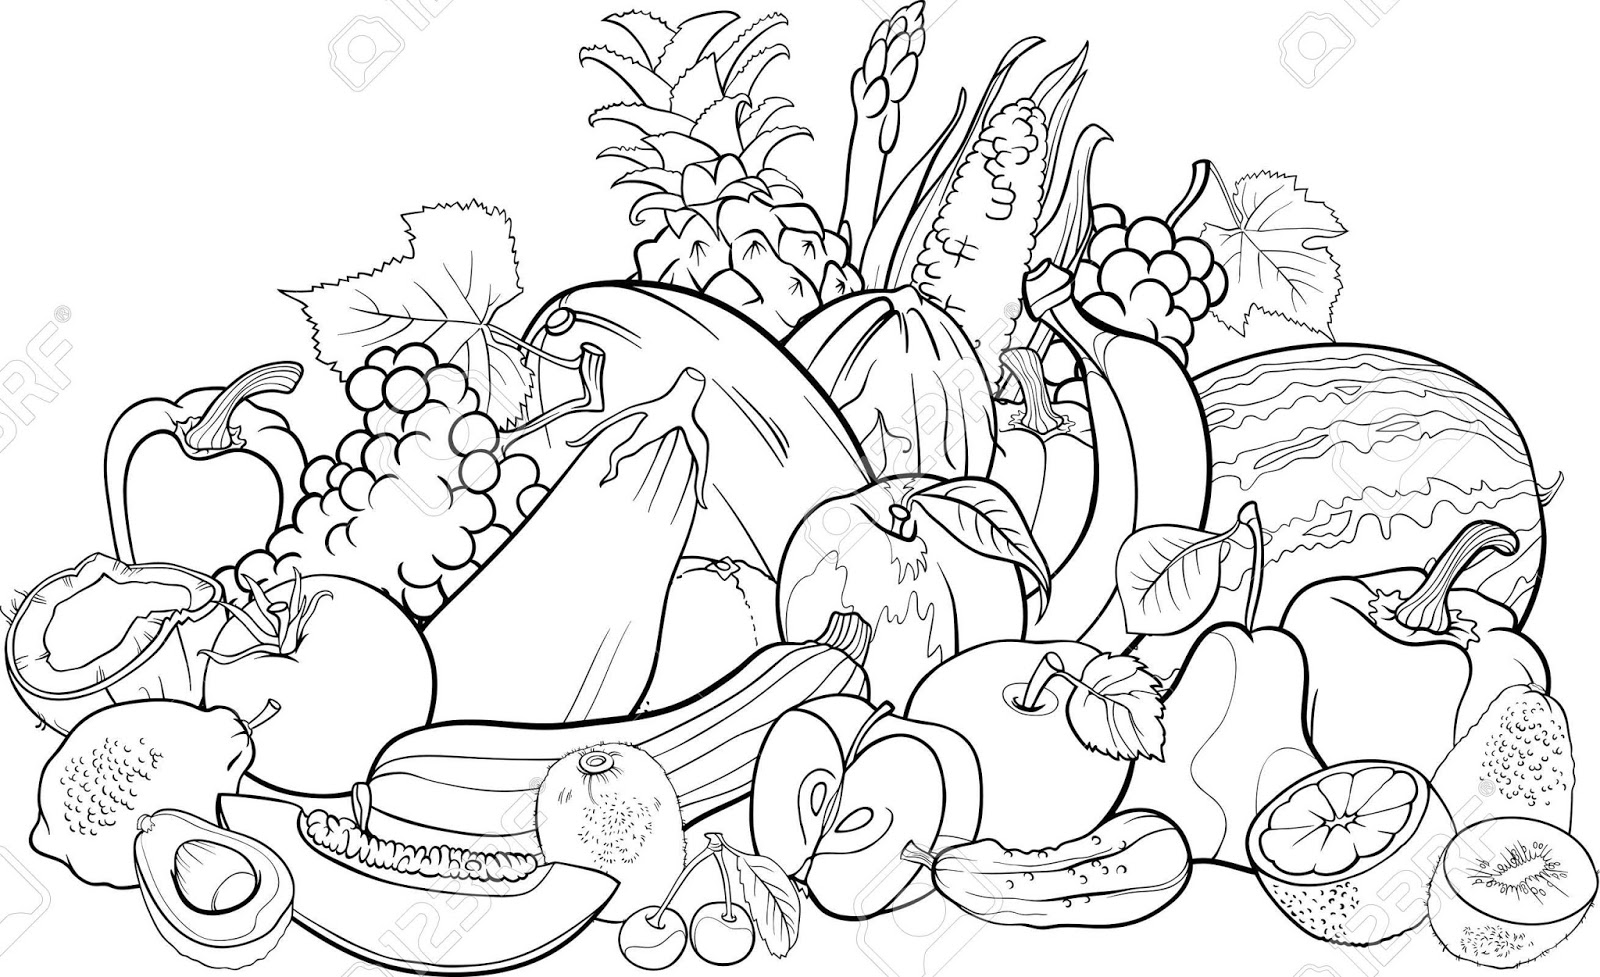 Coloring worksheets vegetables - Fruits And Vegetables Big Group Coloring Pages For Kids